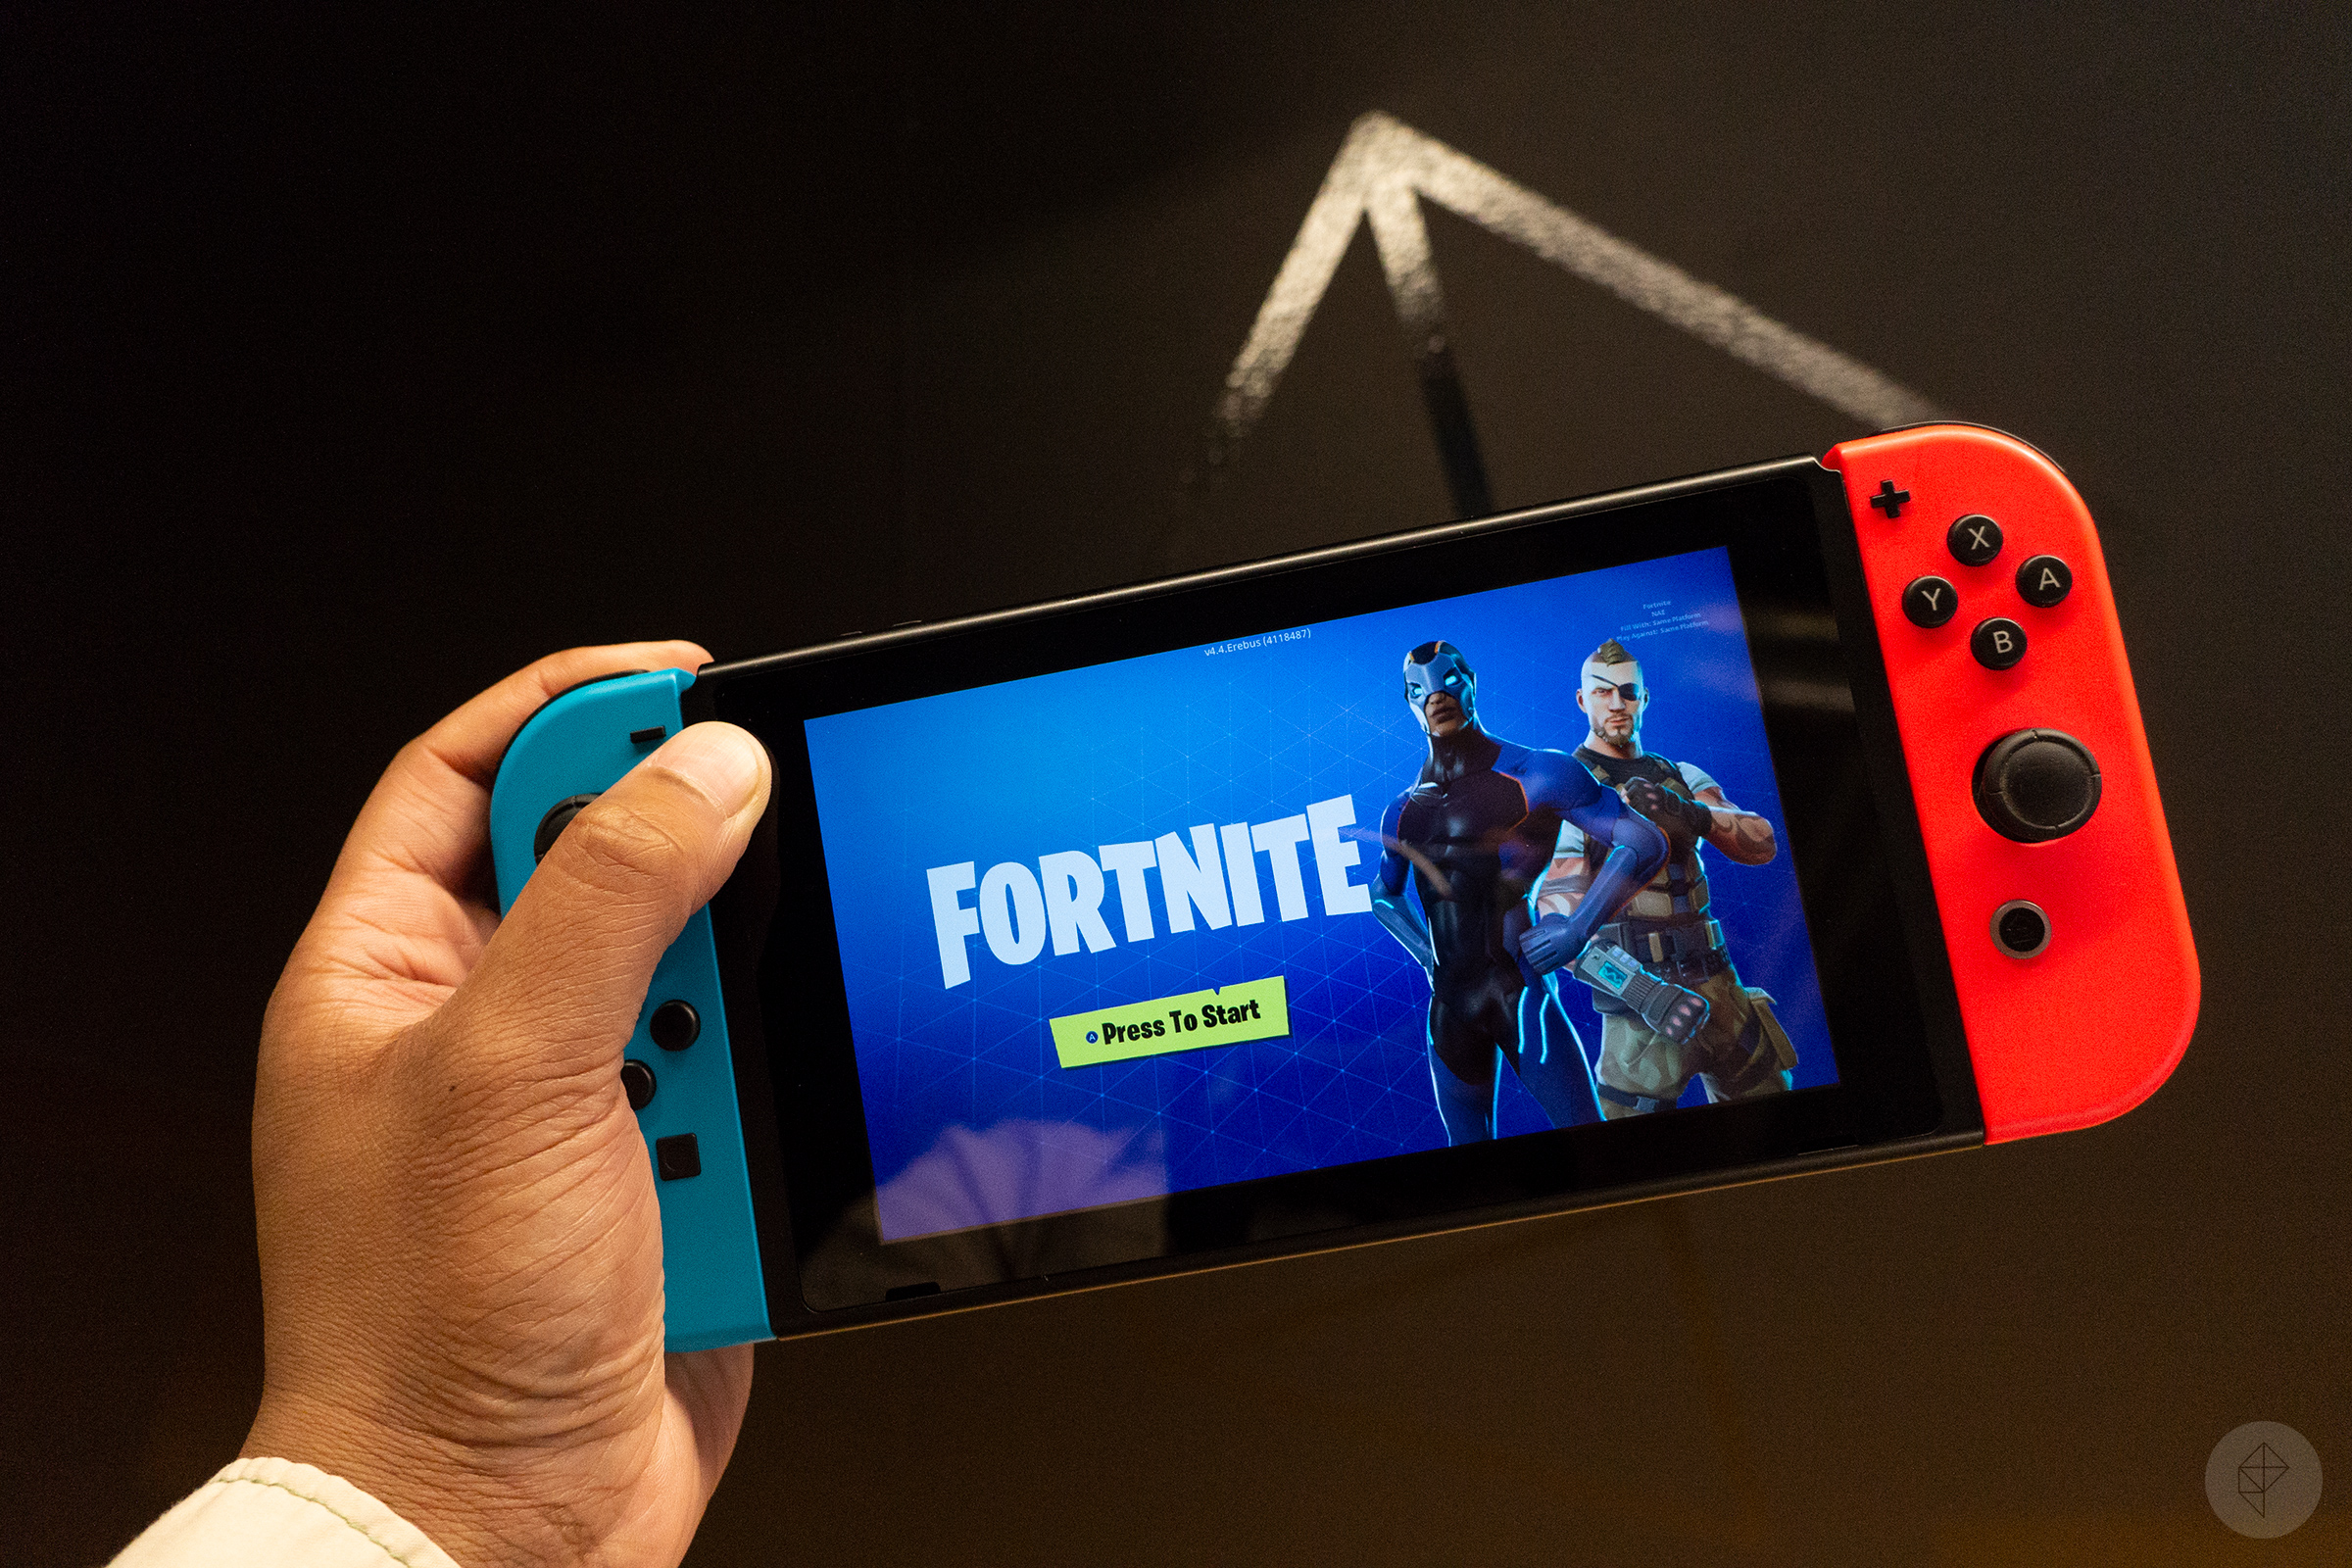 PS4-locked Fortnite accounts now freed for Switch and Xbox